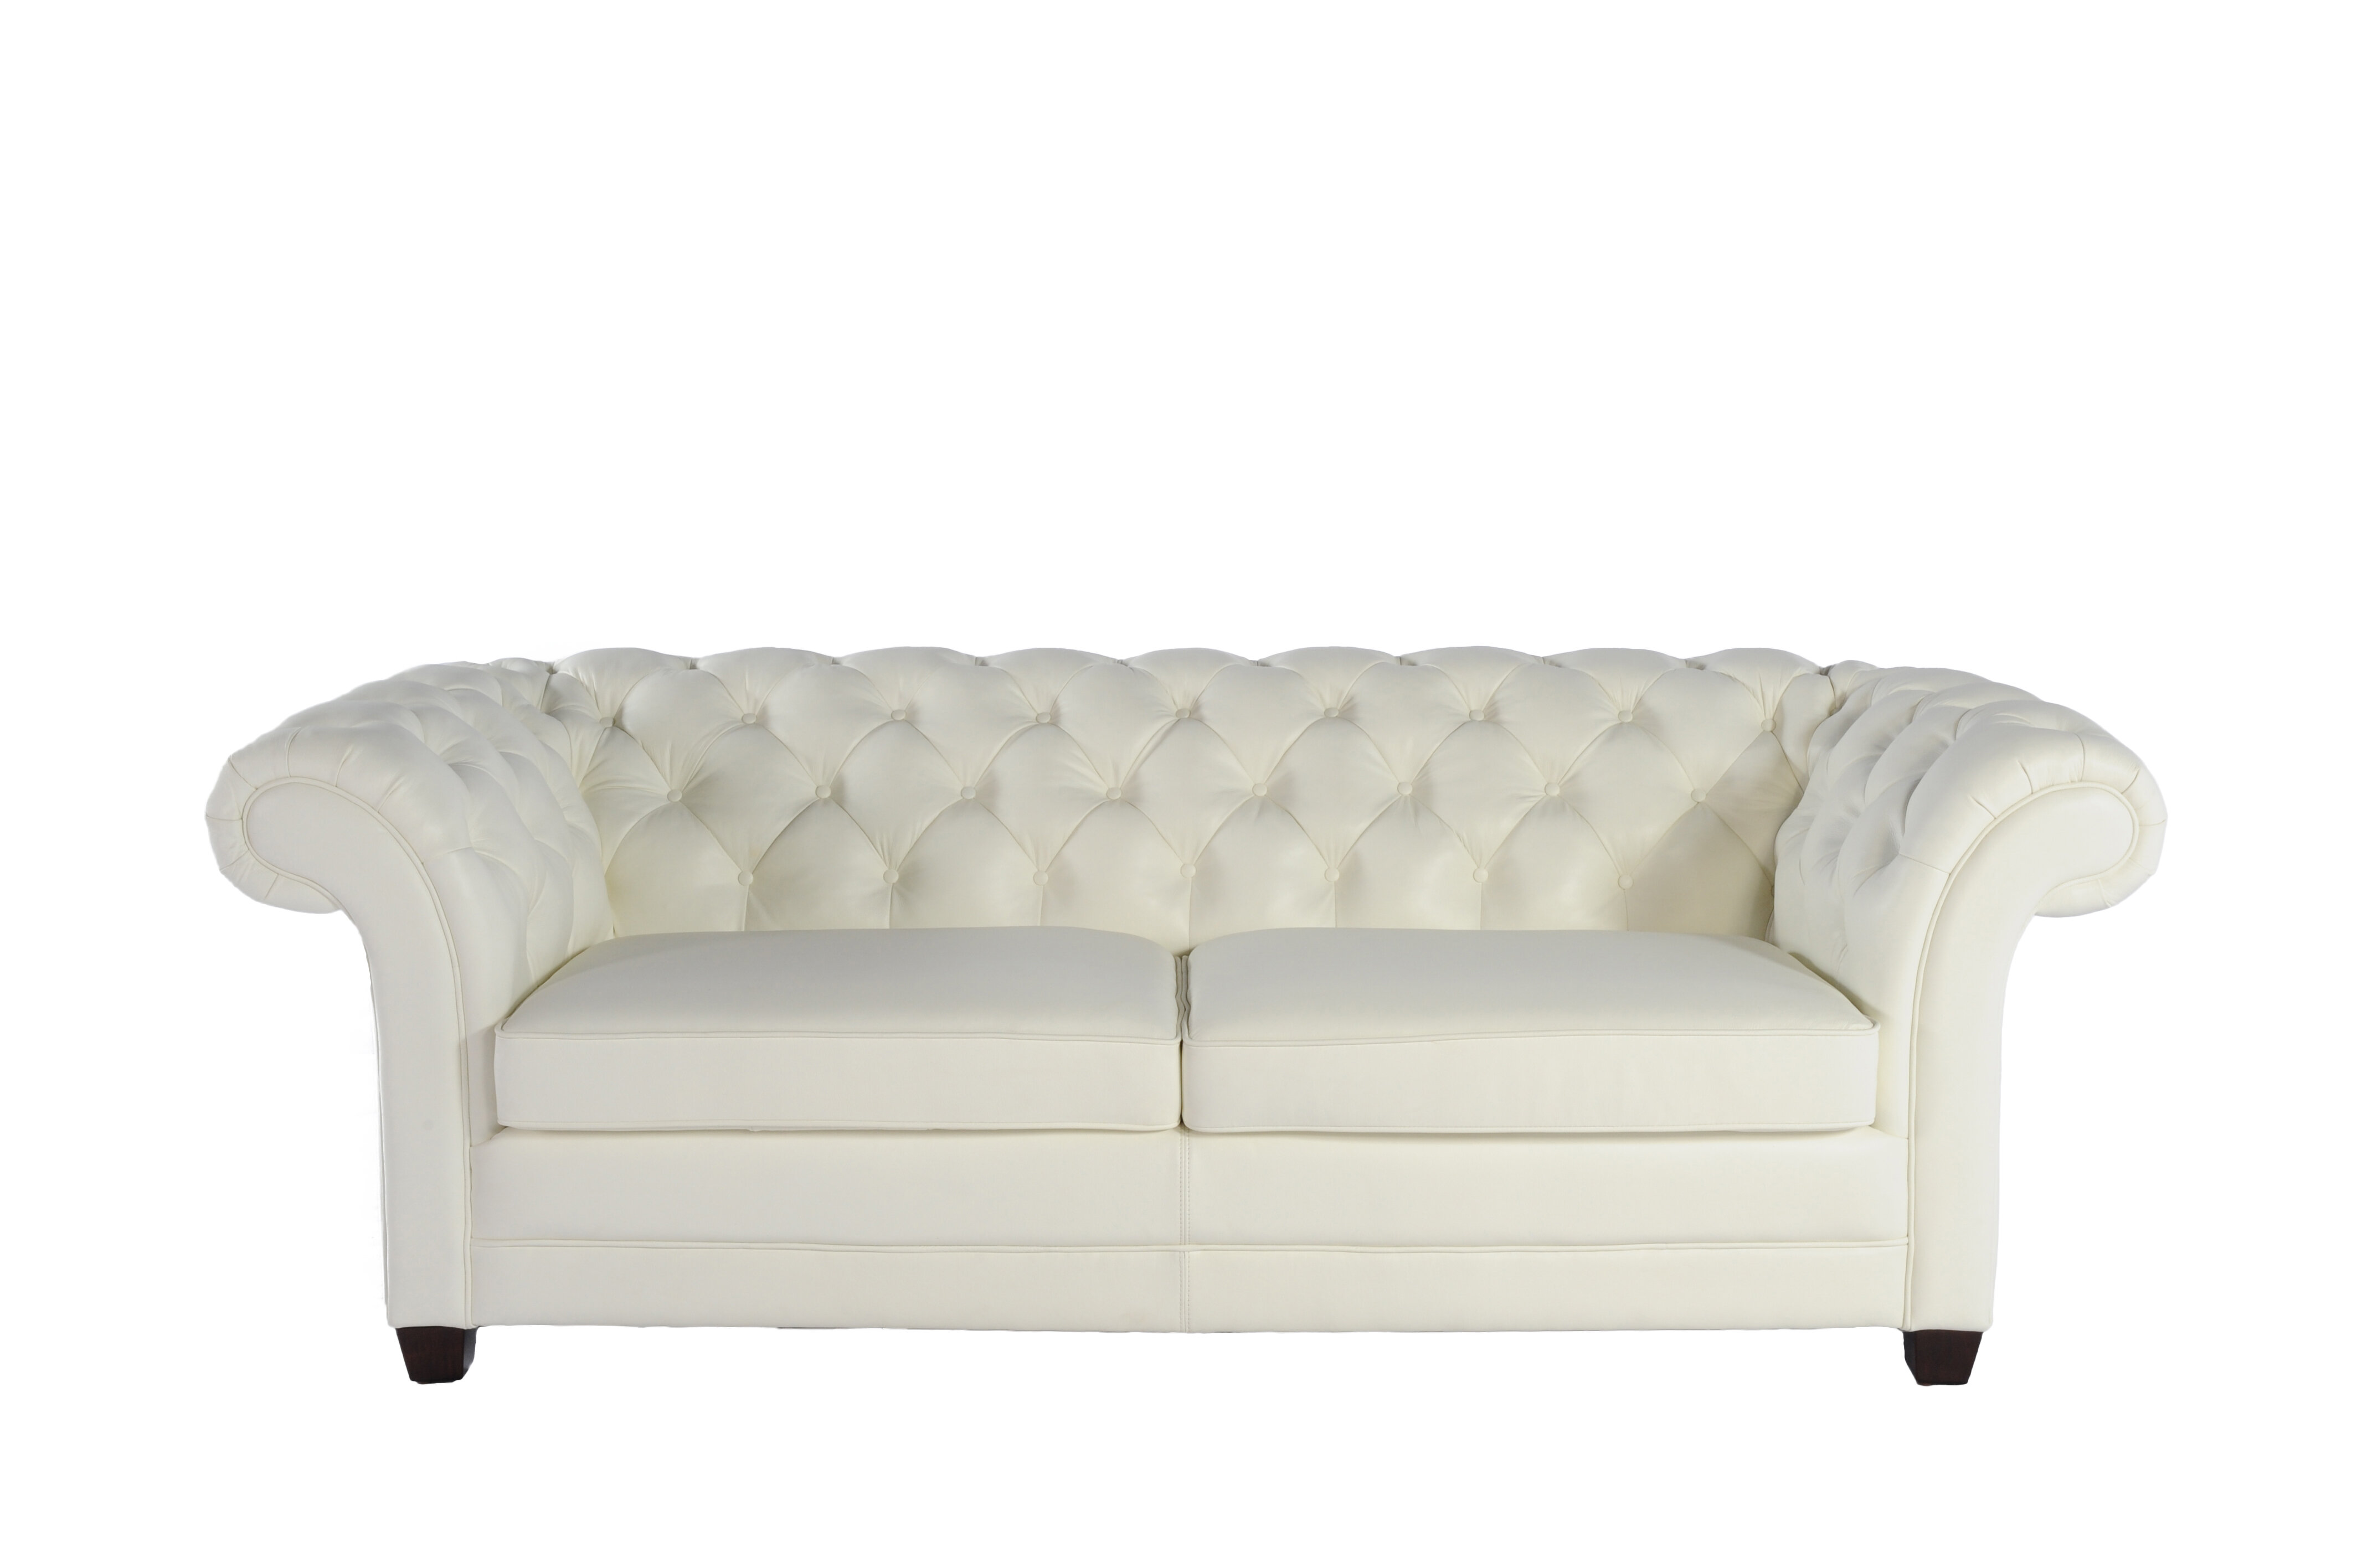 Bon Lazzaro Leather Leather Chesterfield Sofa U0026 Reviews | Wayfair